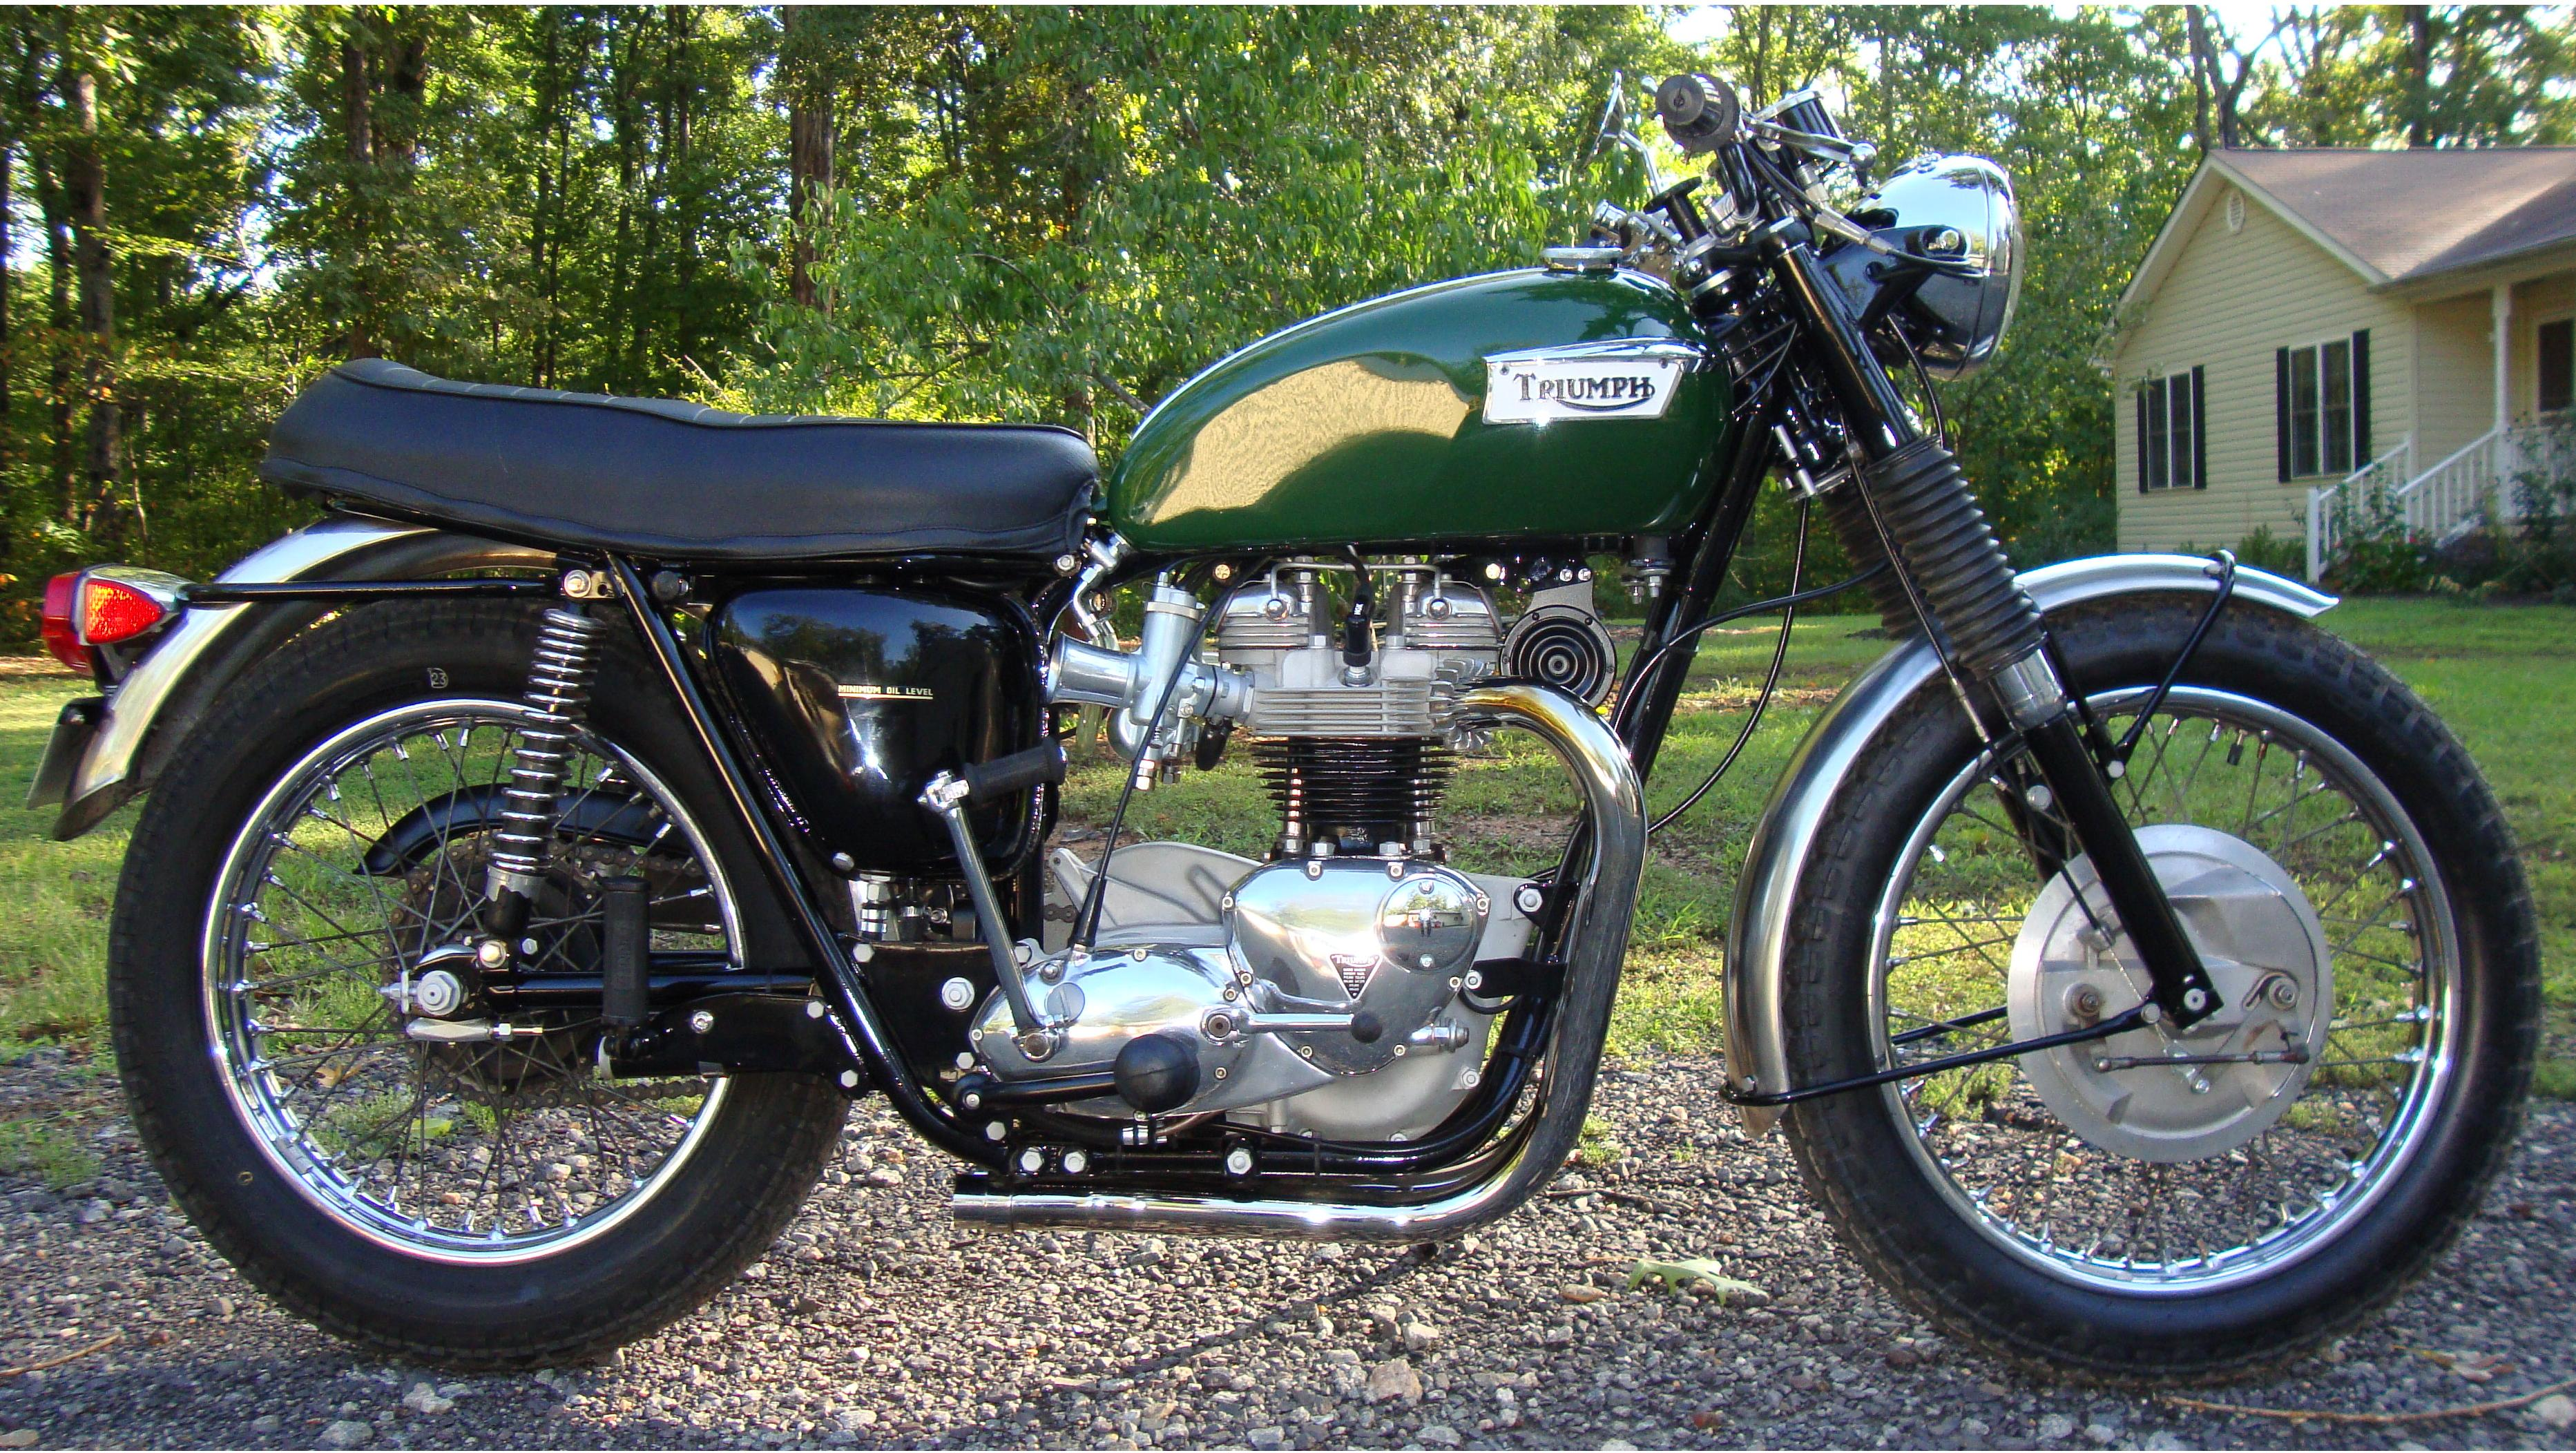 1968 Triumph Bonneville Wiring Harness 38 Diagram Images 81 Scrambler Jb T120r Final 2 Crop Randys Cycle Service Restoration Vintage Motorcycle At Cita